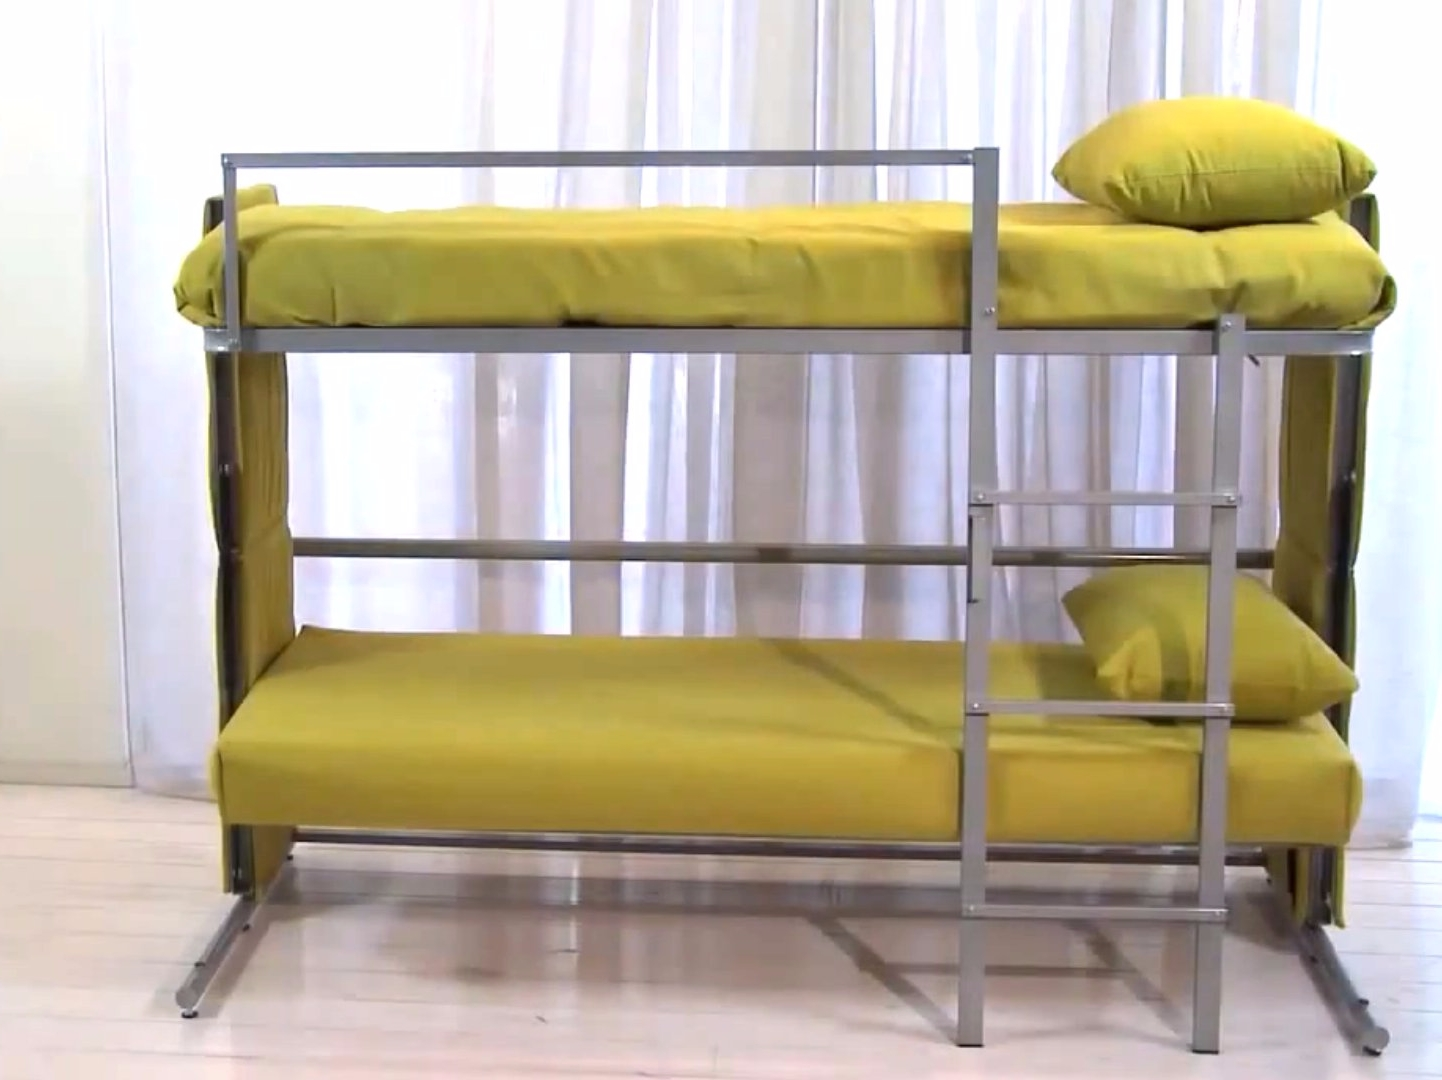 Sofa Bunk Beds Pertaining To Trendy Convertible Sofa Bunk Bed Ikea : Advantages Of Couch That Turns (View 14 of 20)